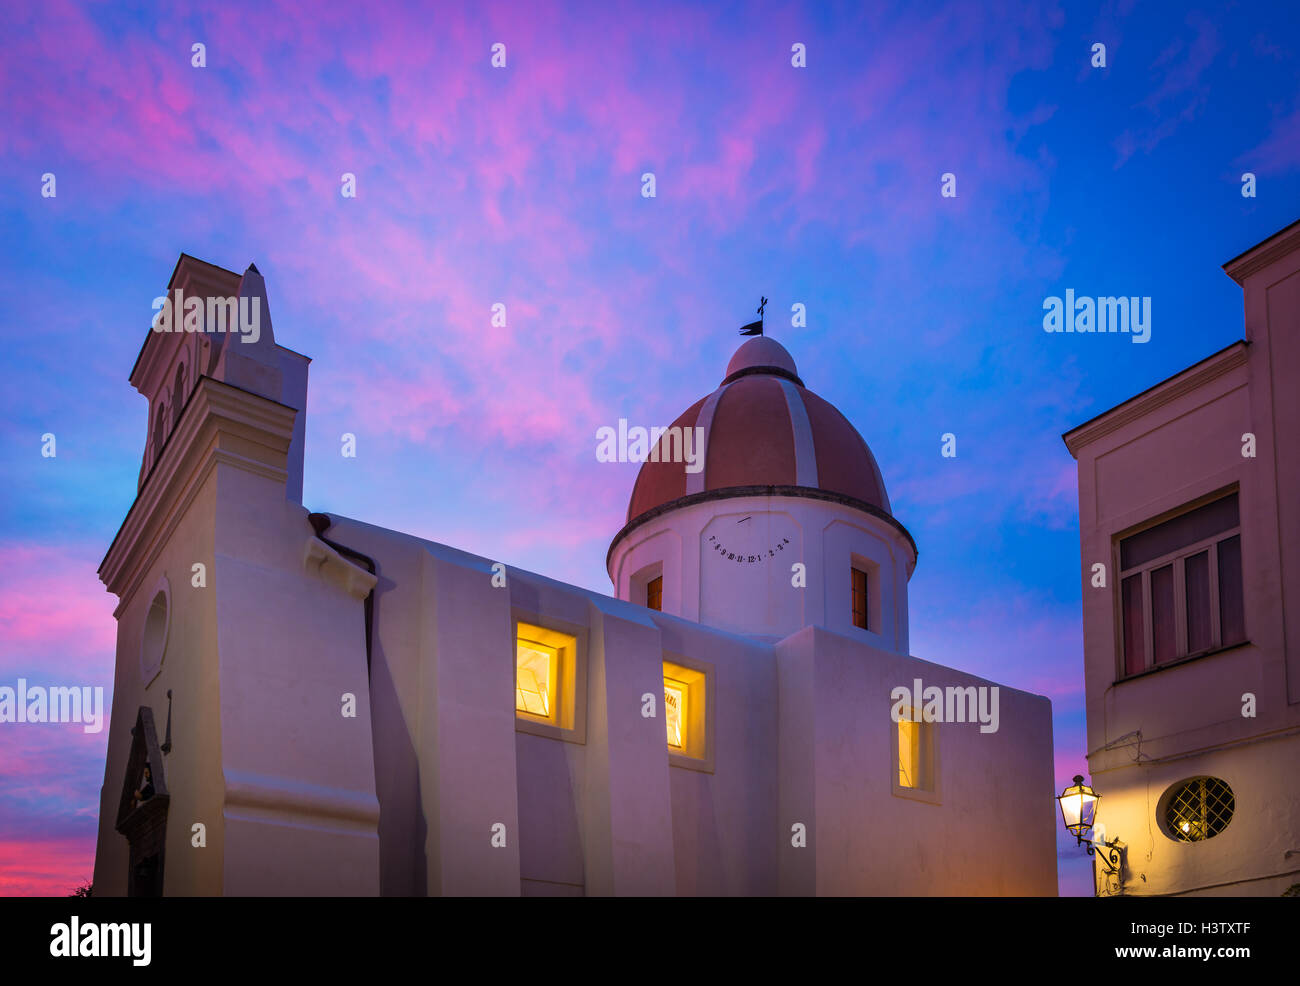 Chiesa San Gaetano in Forio. Forio (known also as Forio of Ischia) is a town and comune on Ischia, Italy. - Stock Image